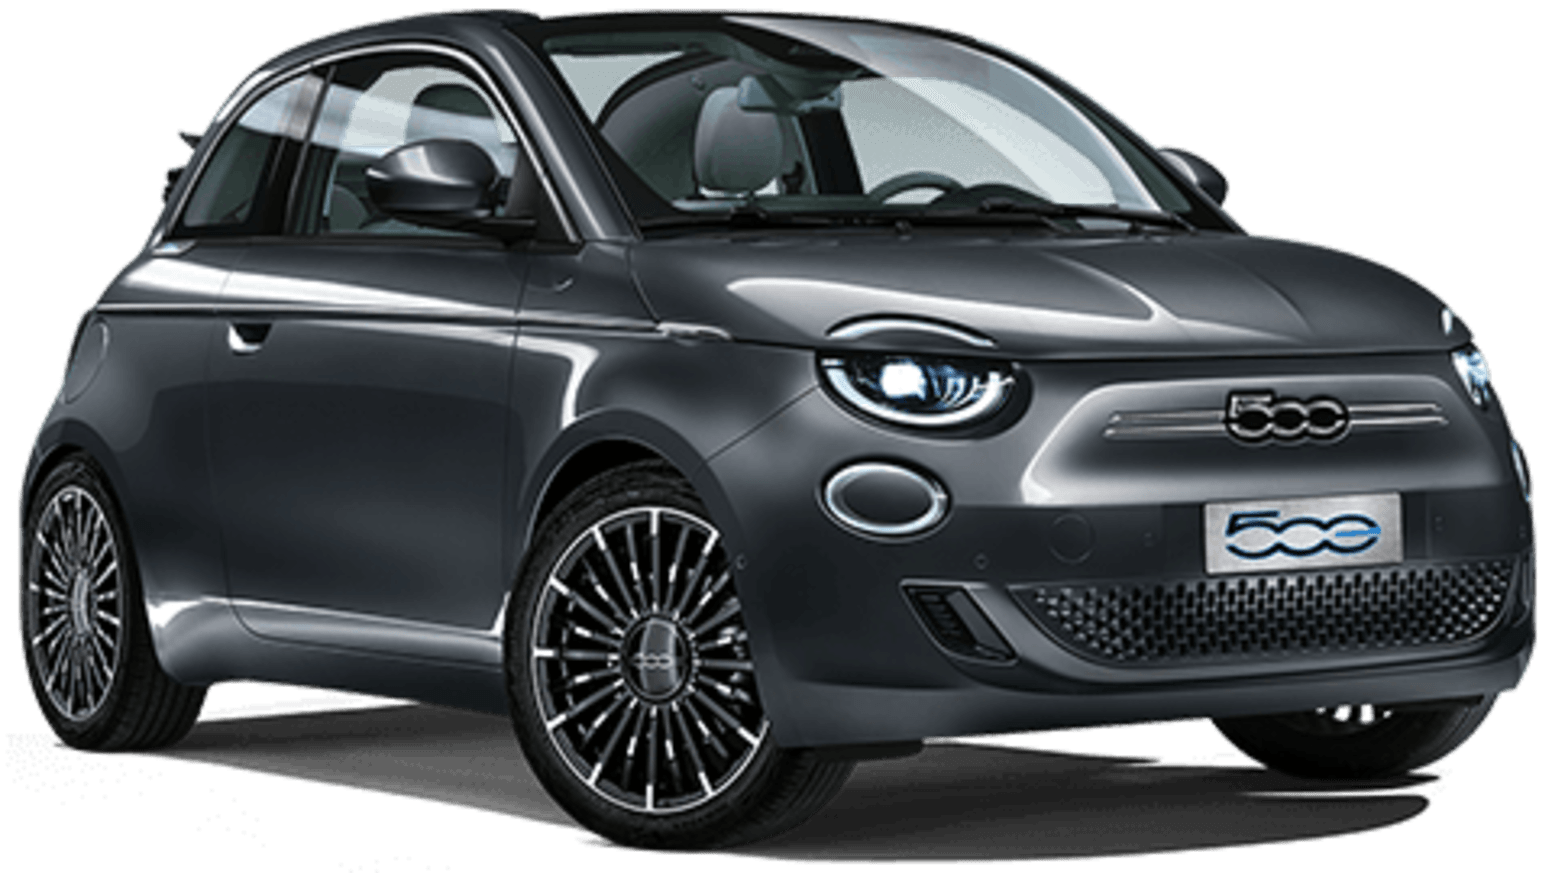 Fiat 500c Electric Convertible